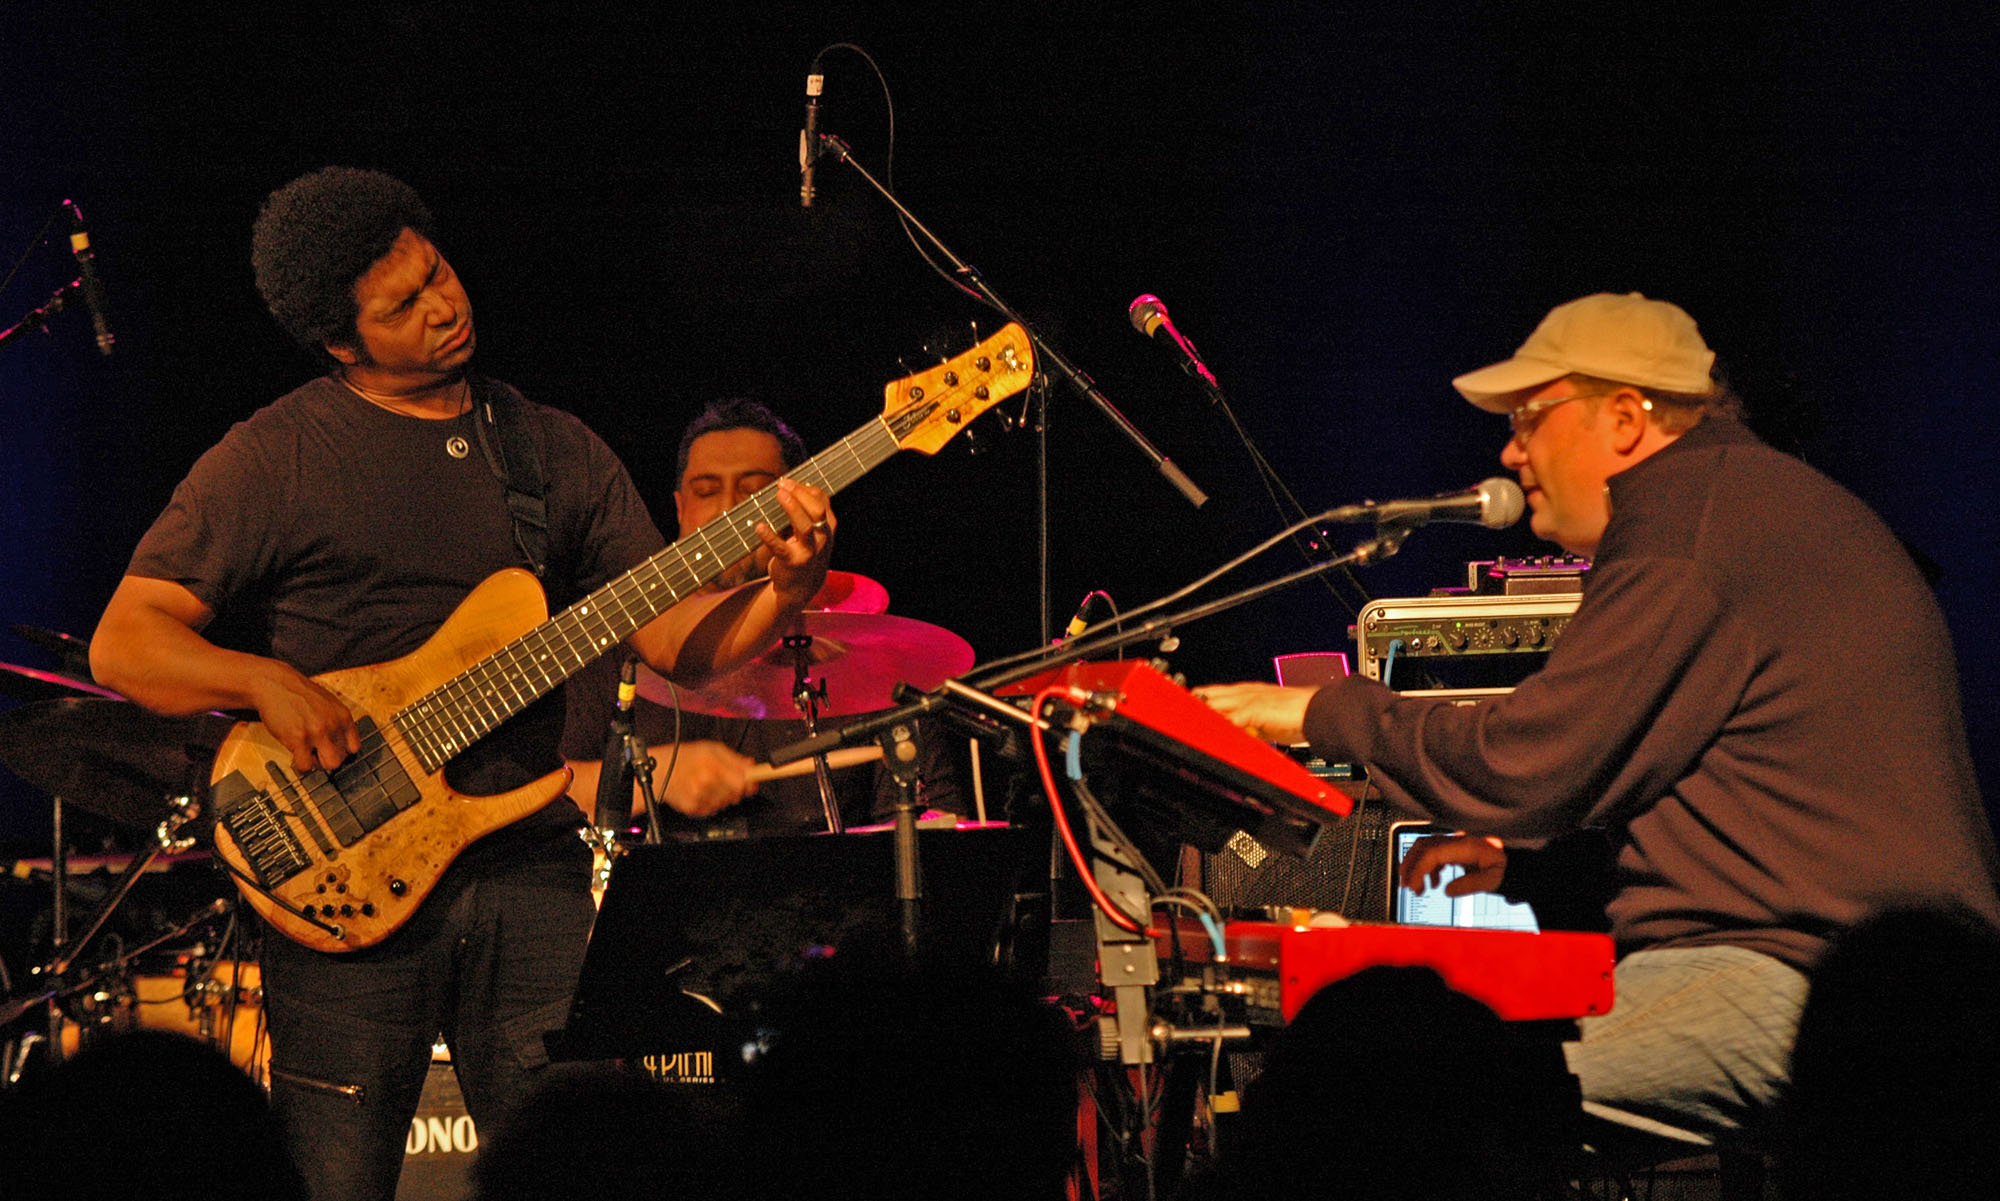 Matthew Garrison, Ranjit Barot and Scott Kinsey, Performing with Human Element at the New Universe Music Festival 2010